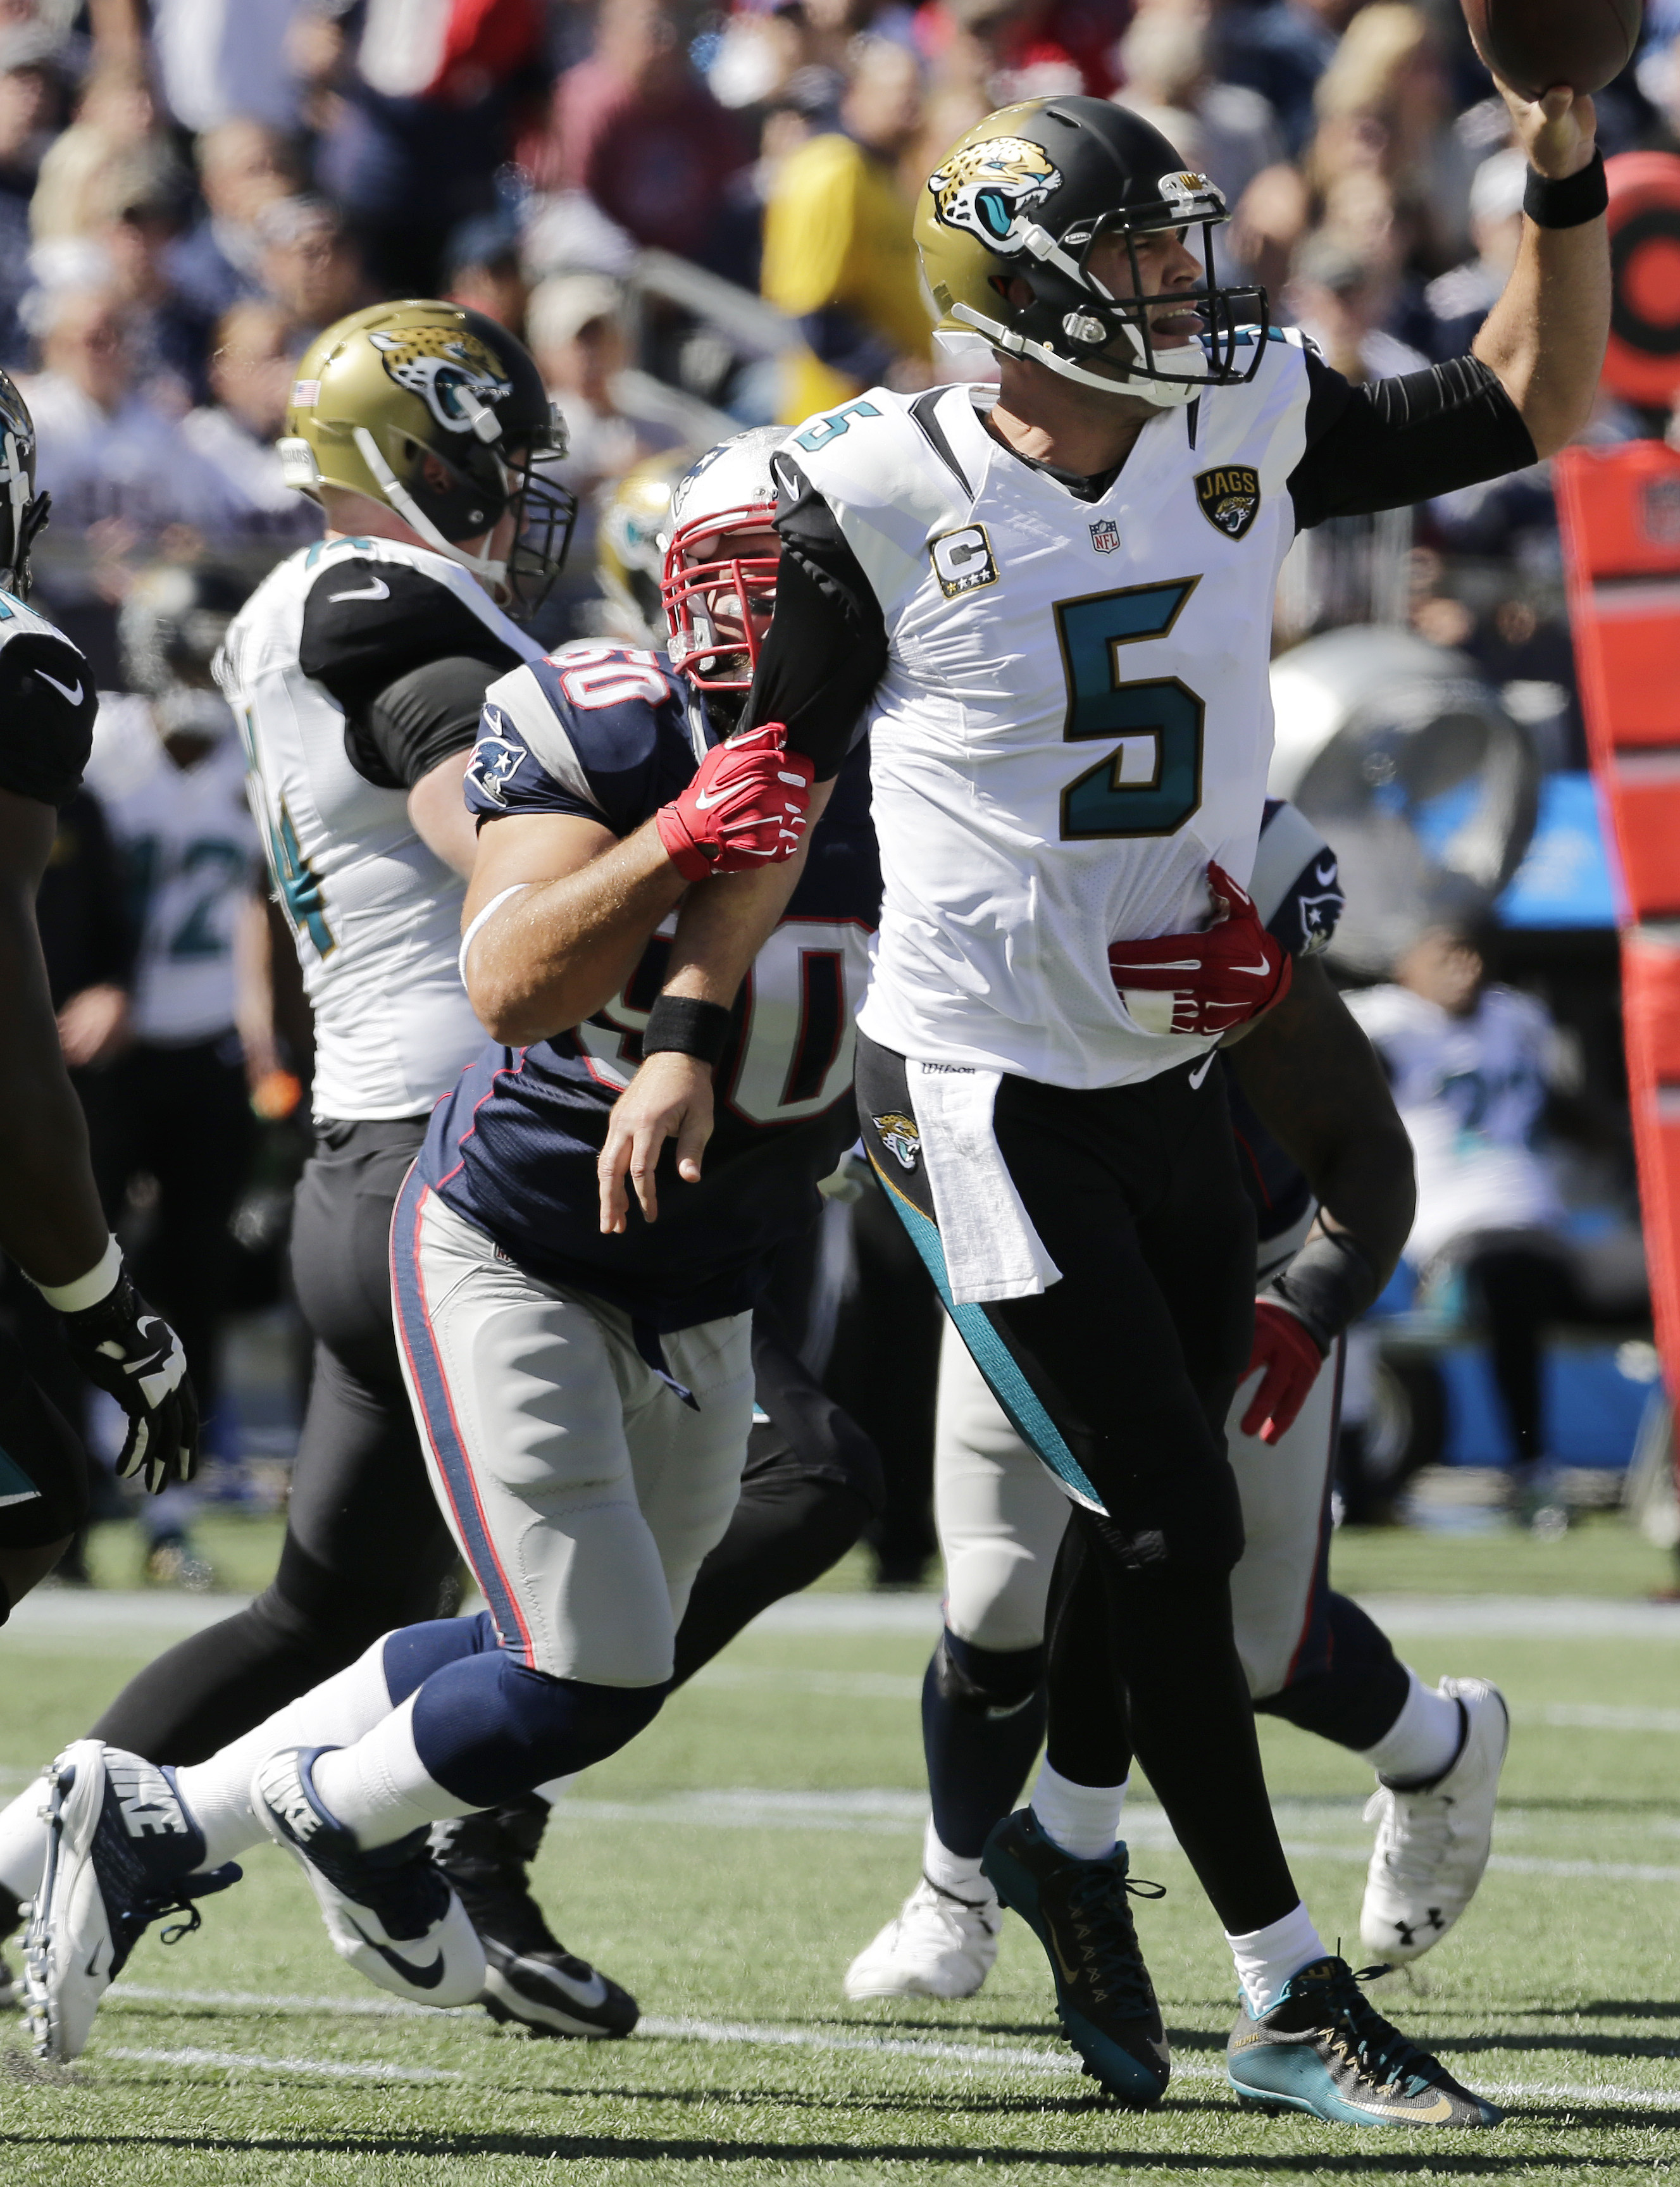 Jacksonville Jaguars quarterback Blake Bortles (5) tosses the ball with his left hand as New England Patriots defensive end Rob Ninkovich (50) wraps him up in the first half of an NFL football game, Sunday, Sept. 27, 2015, in Foxborough, Mass. (AP Photo/C